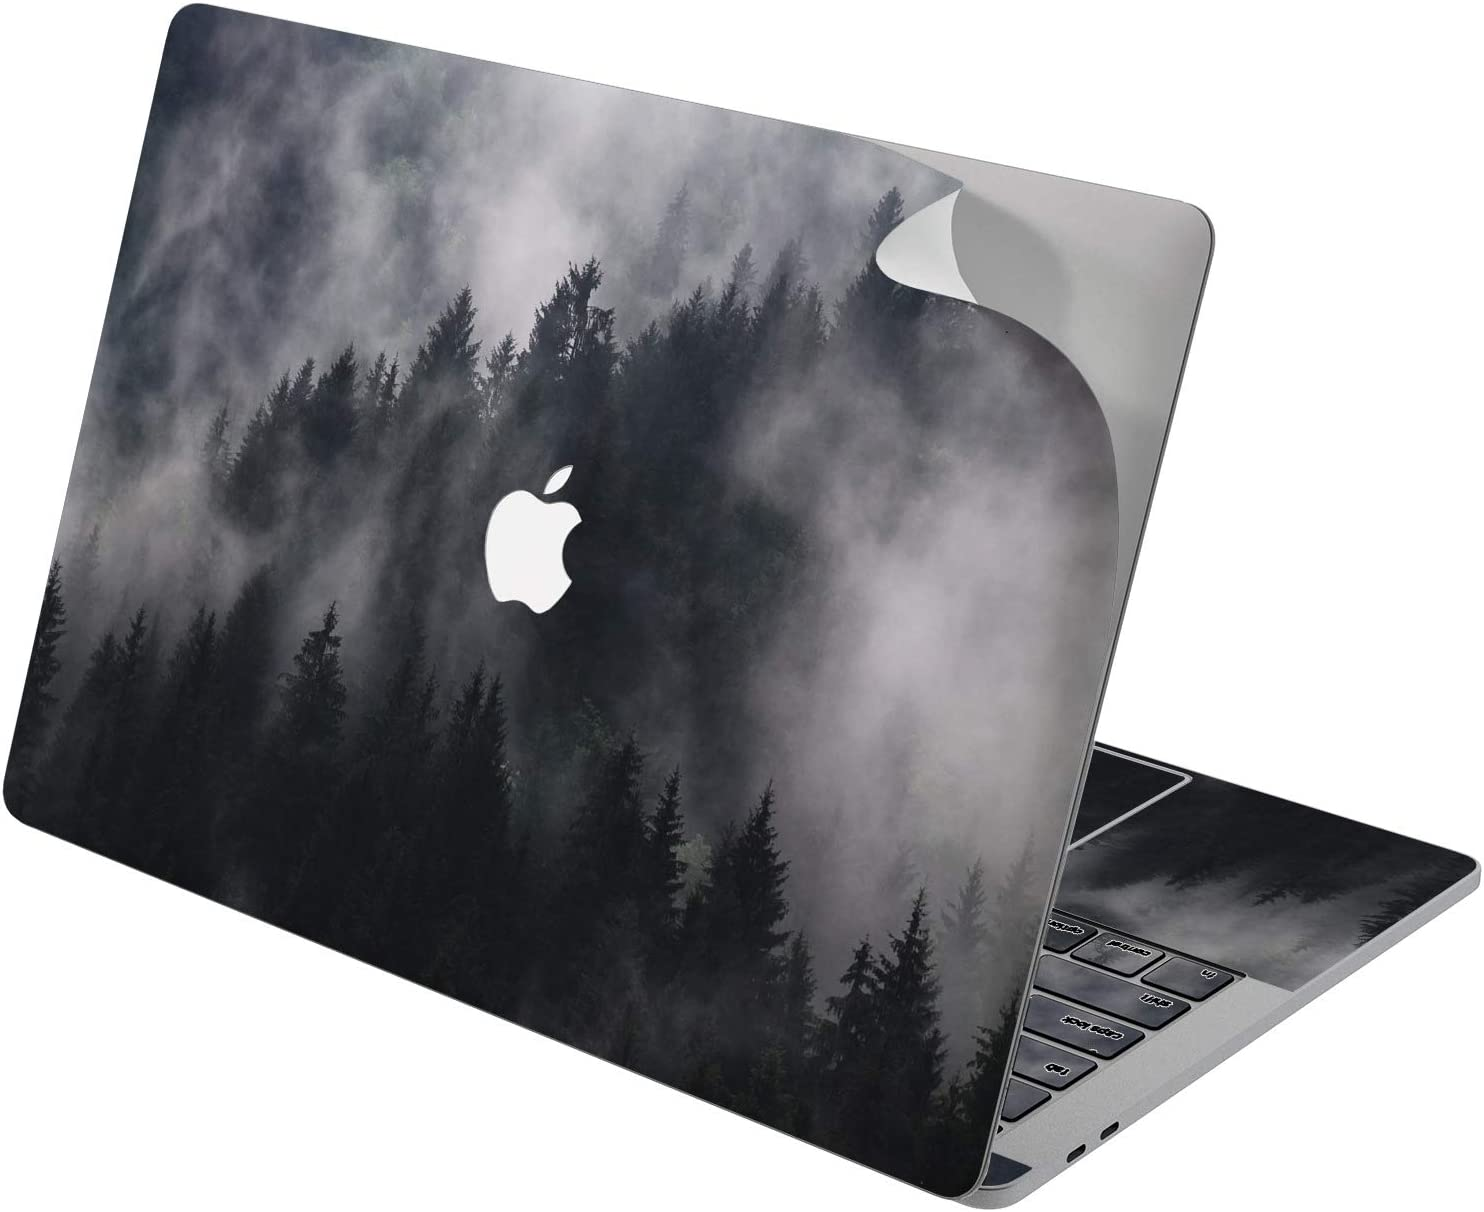 "Cavka Vinyl Decal Skin for Apple MacBook Pro 13"" 2019 15"" 2018 Air 13"" 2020 Retina 2015 Mac 11"" Mac 12"" Basic Grey Nature Laptop Pine Black Trendy Cover Sticker Misty Forest Print Design Protective"